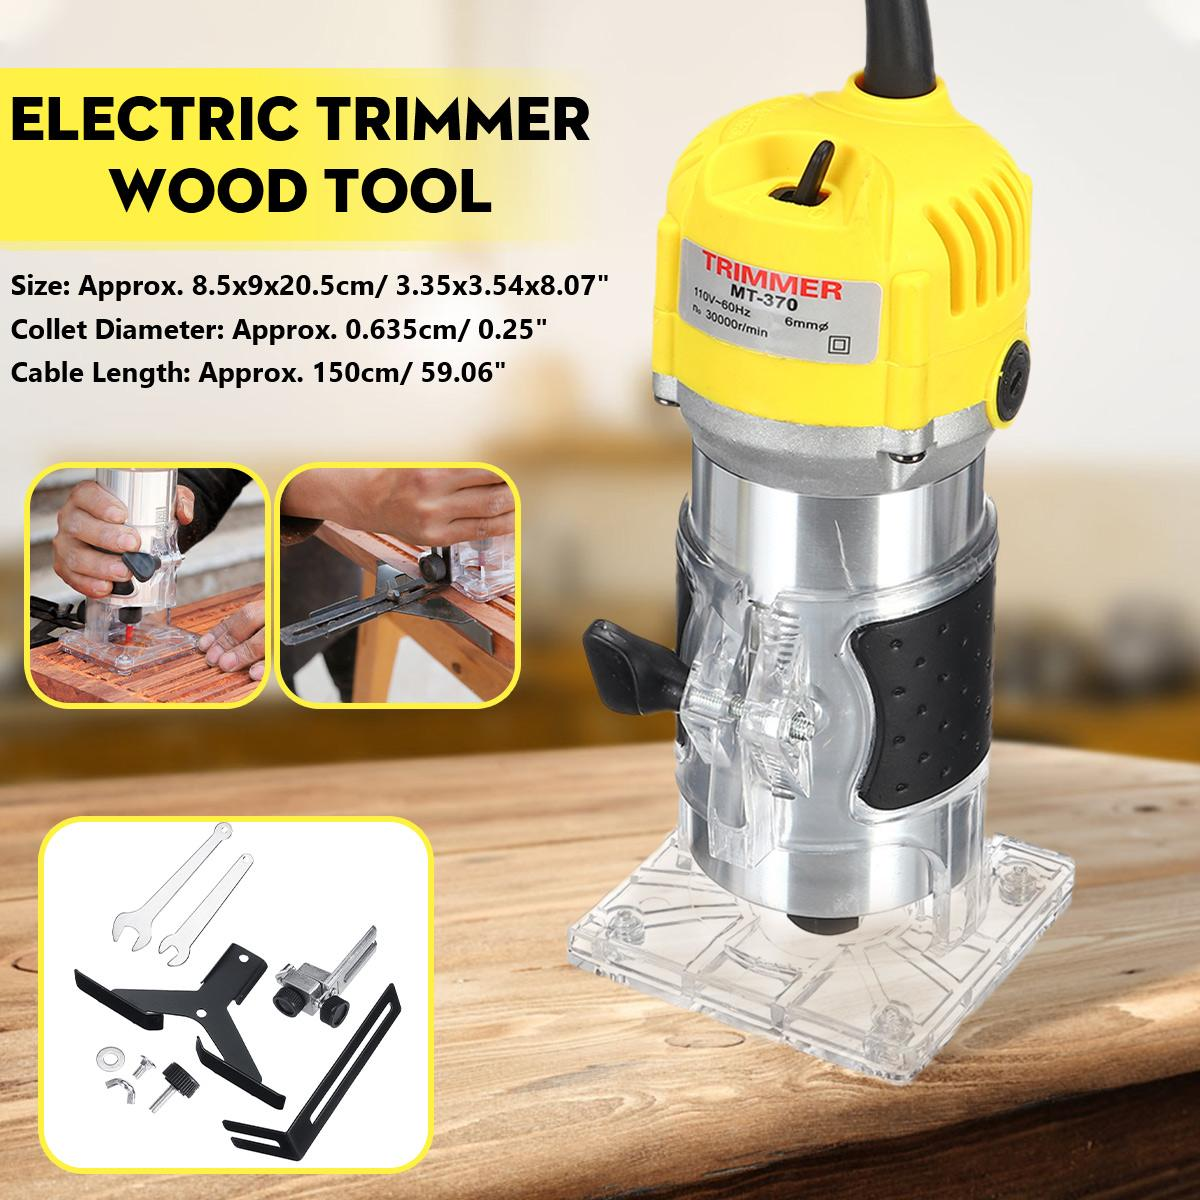 2200W Electric Hand Trimmer 6.35mm Laminate Palms Wood Router Trimming Cutting Carving Machine Woodworking Power Tool 110V 220V